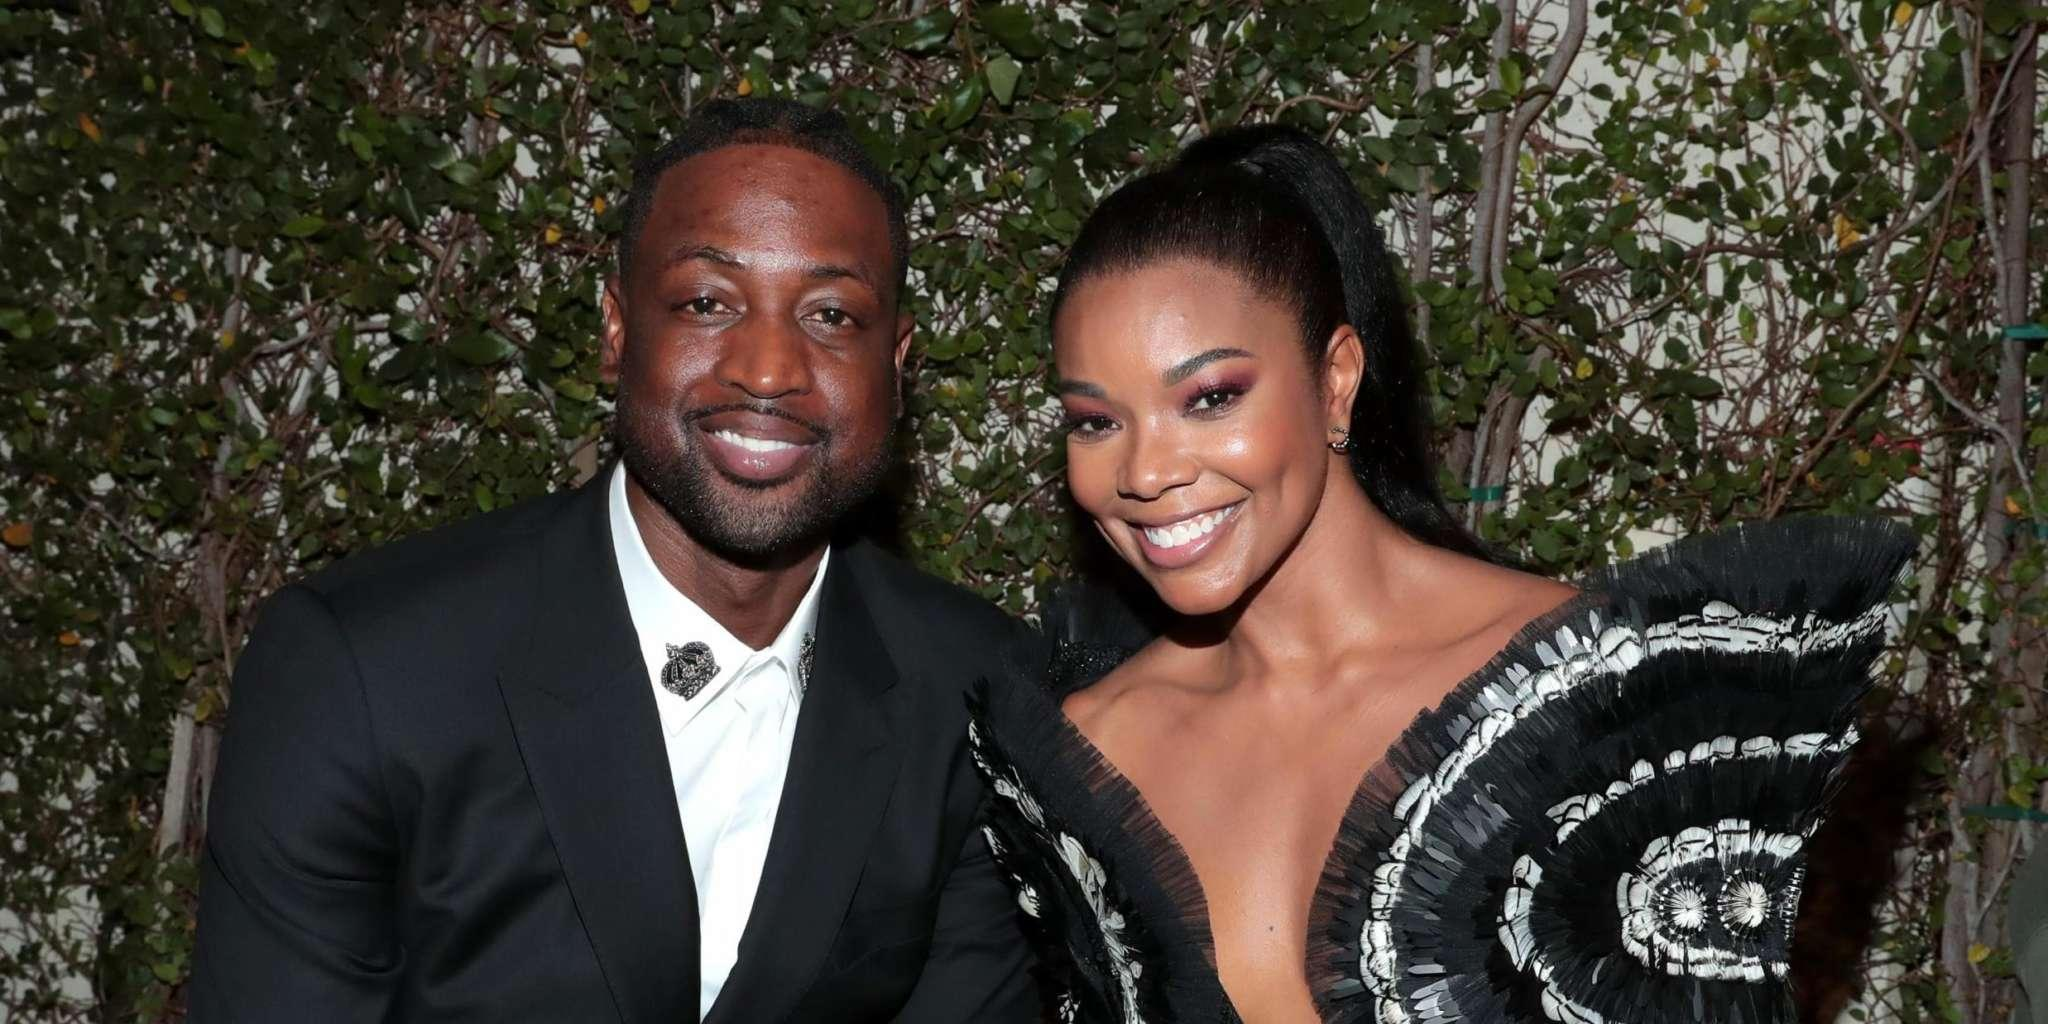 Gabrielle Union Is Living Her Best Life With Dwyane Wade And Their Kids - See The Happy Photos She Shared